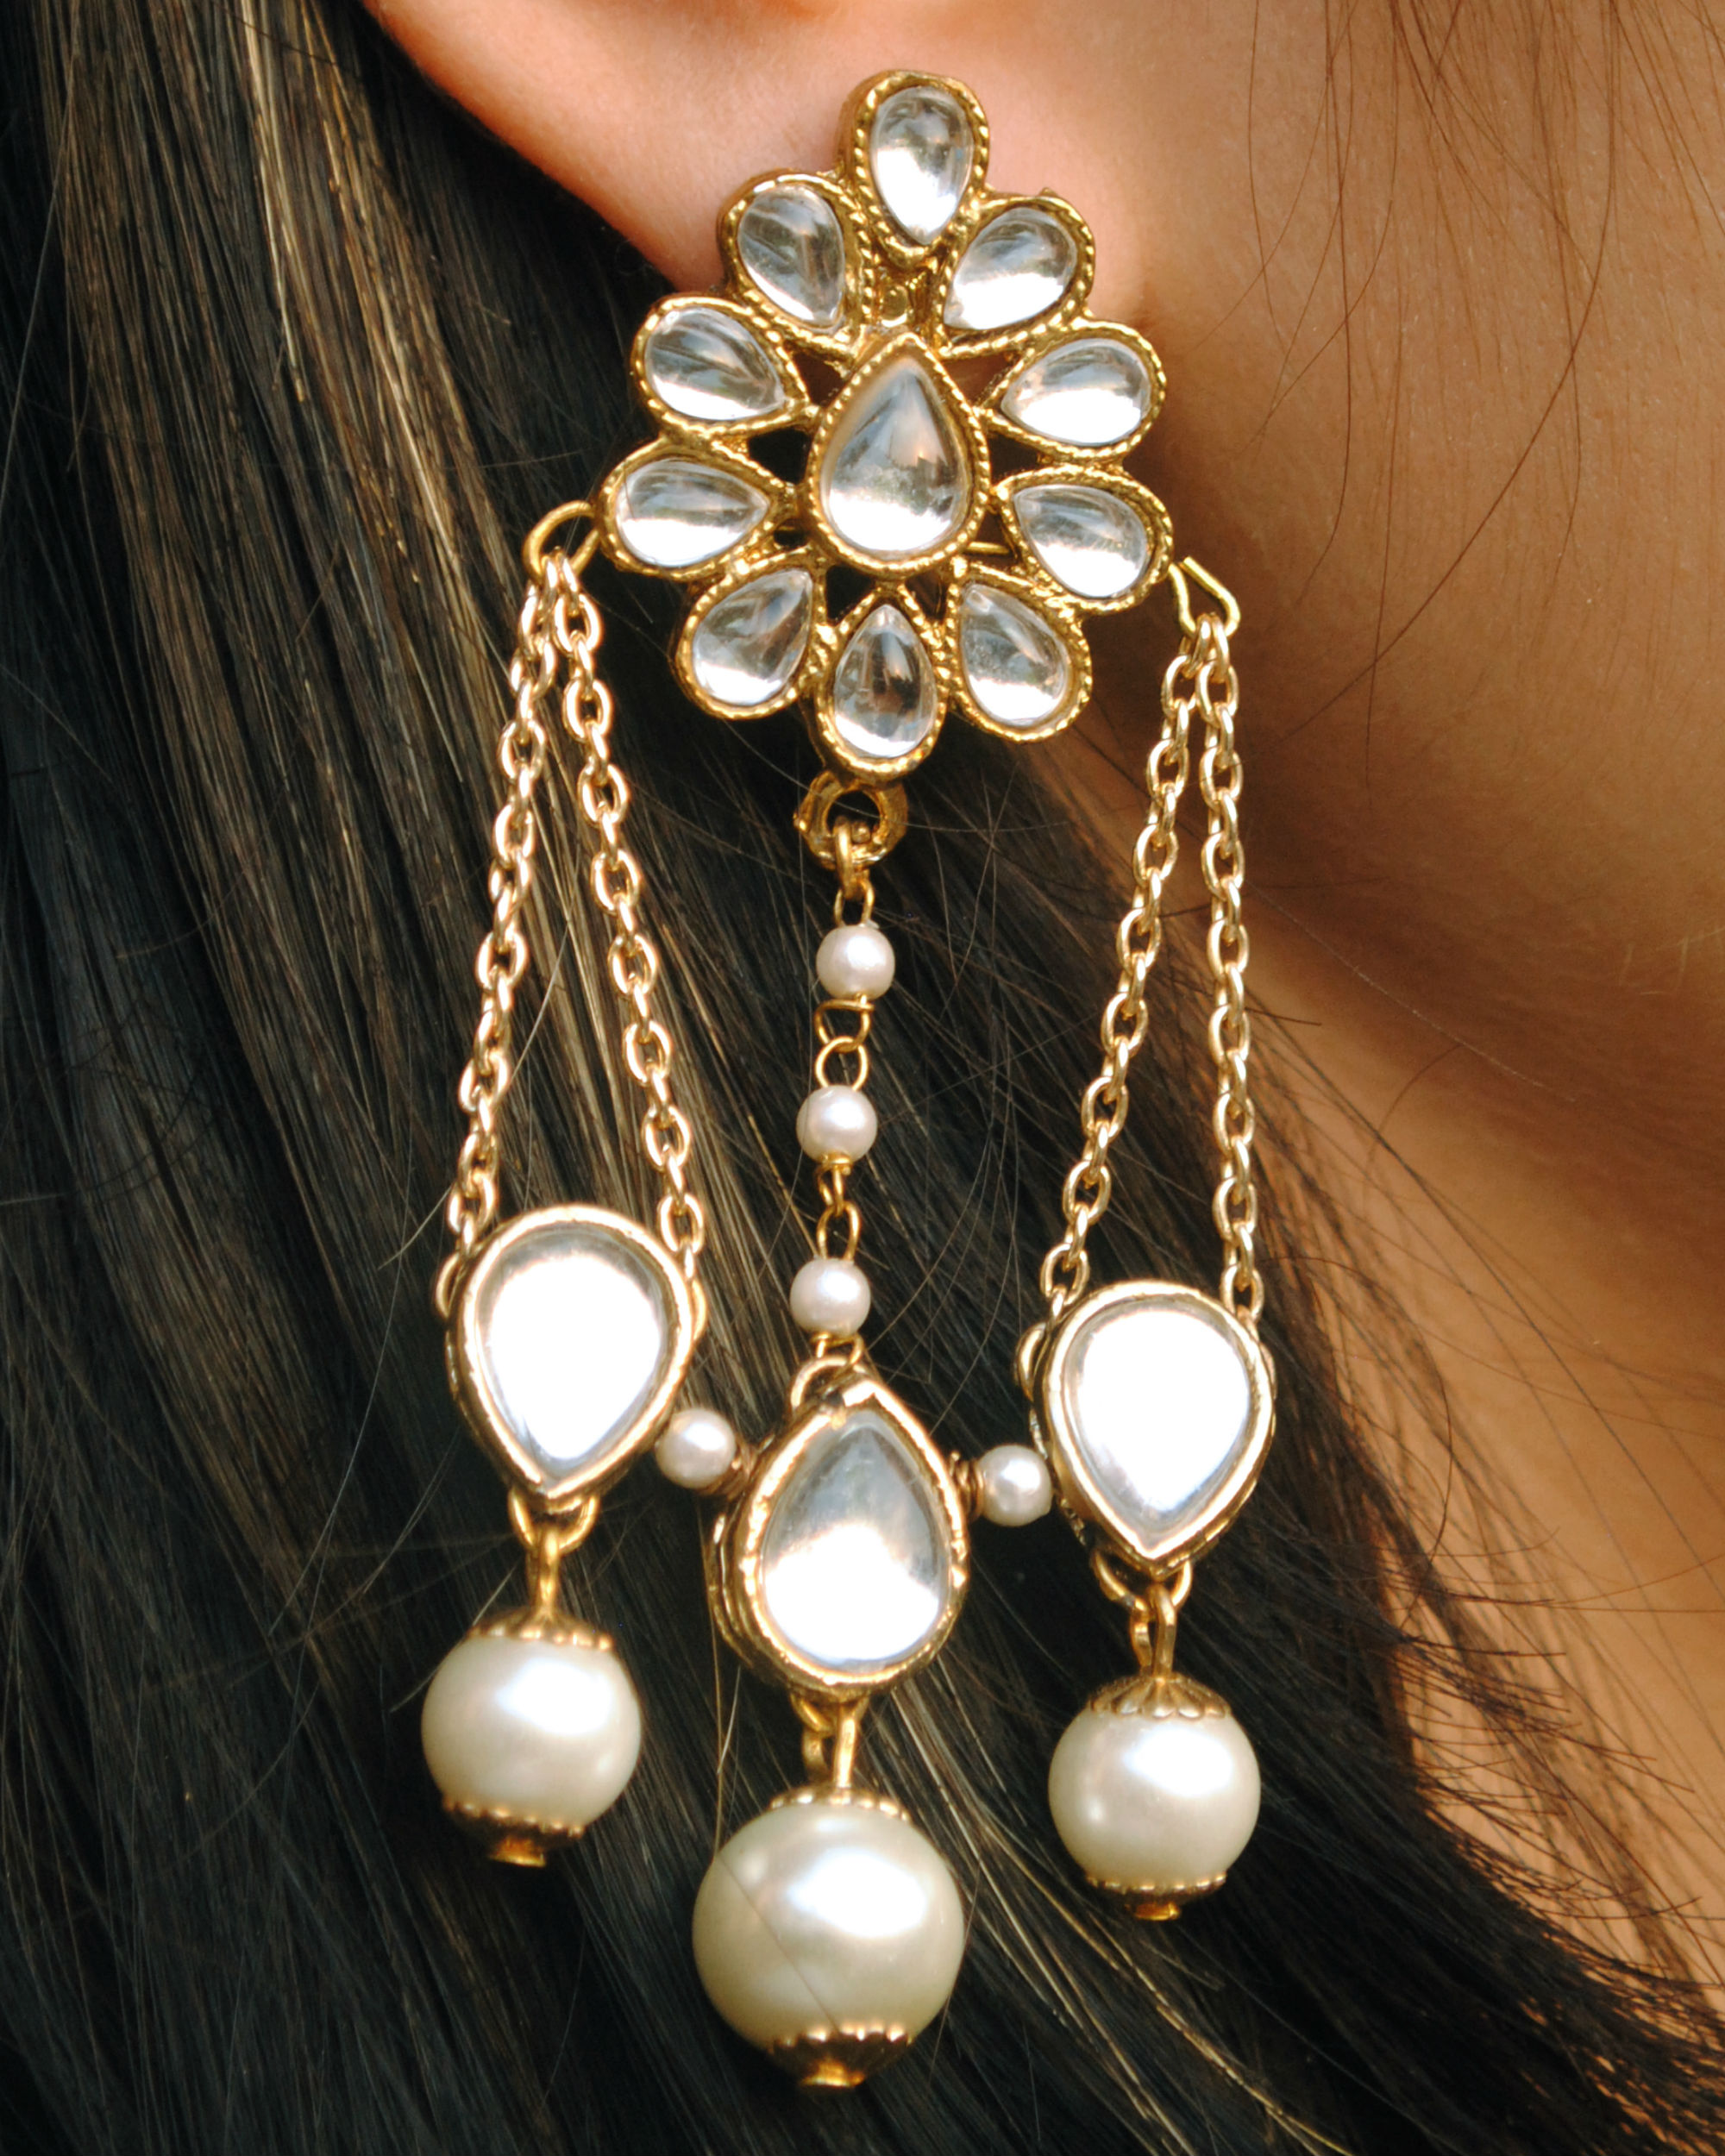 205a83581 Kundan stud with dangling chain earrings by Abhika Creations | The Secret  Label